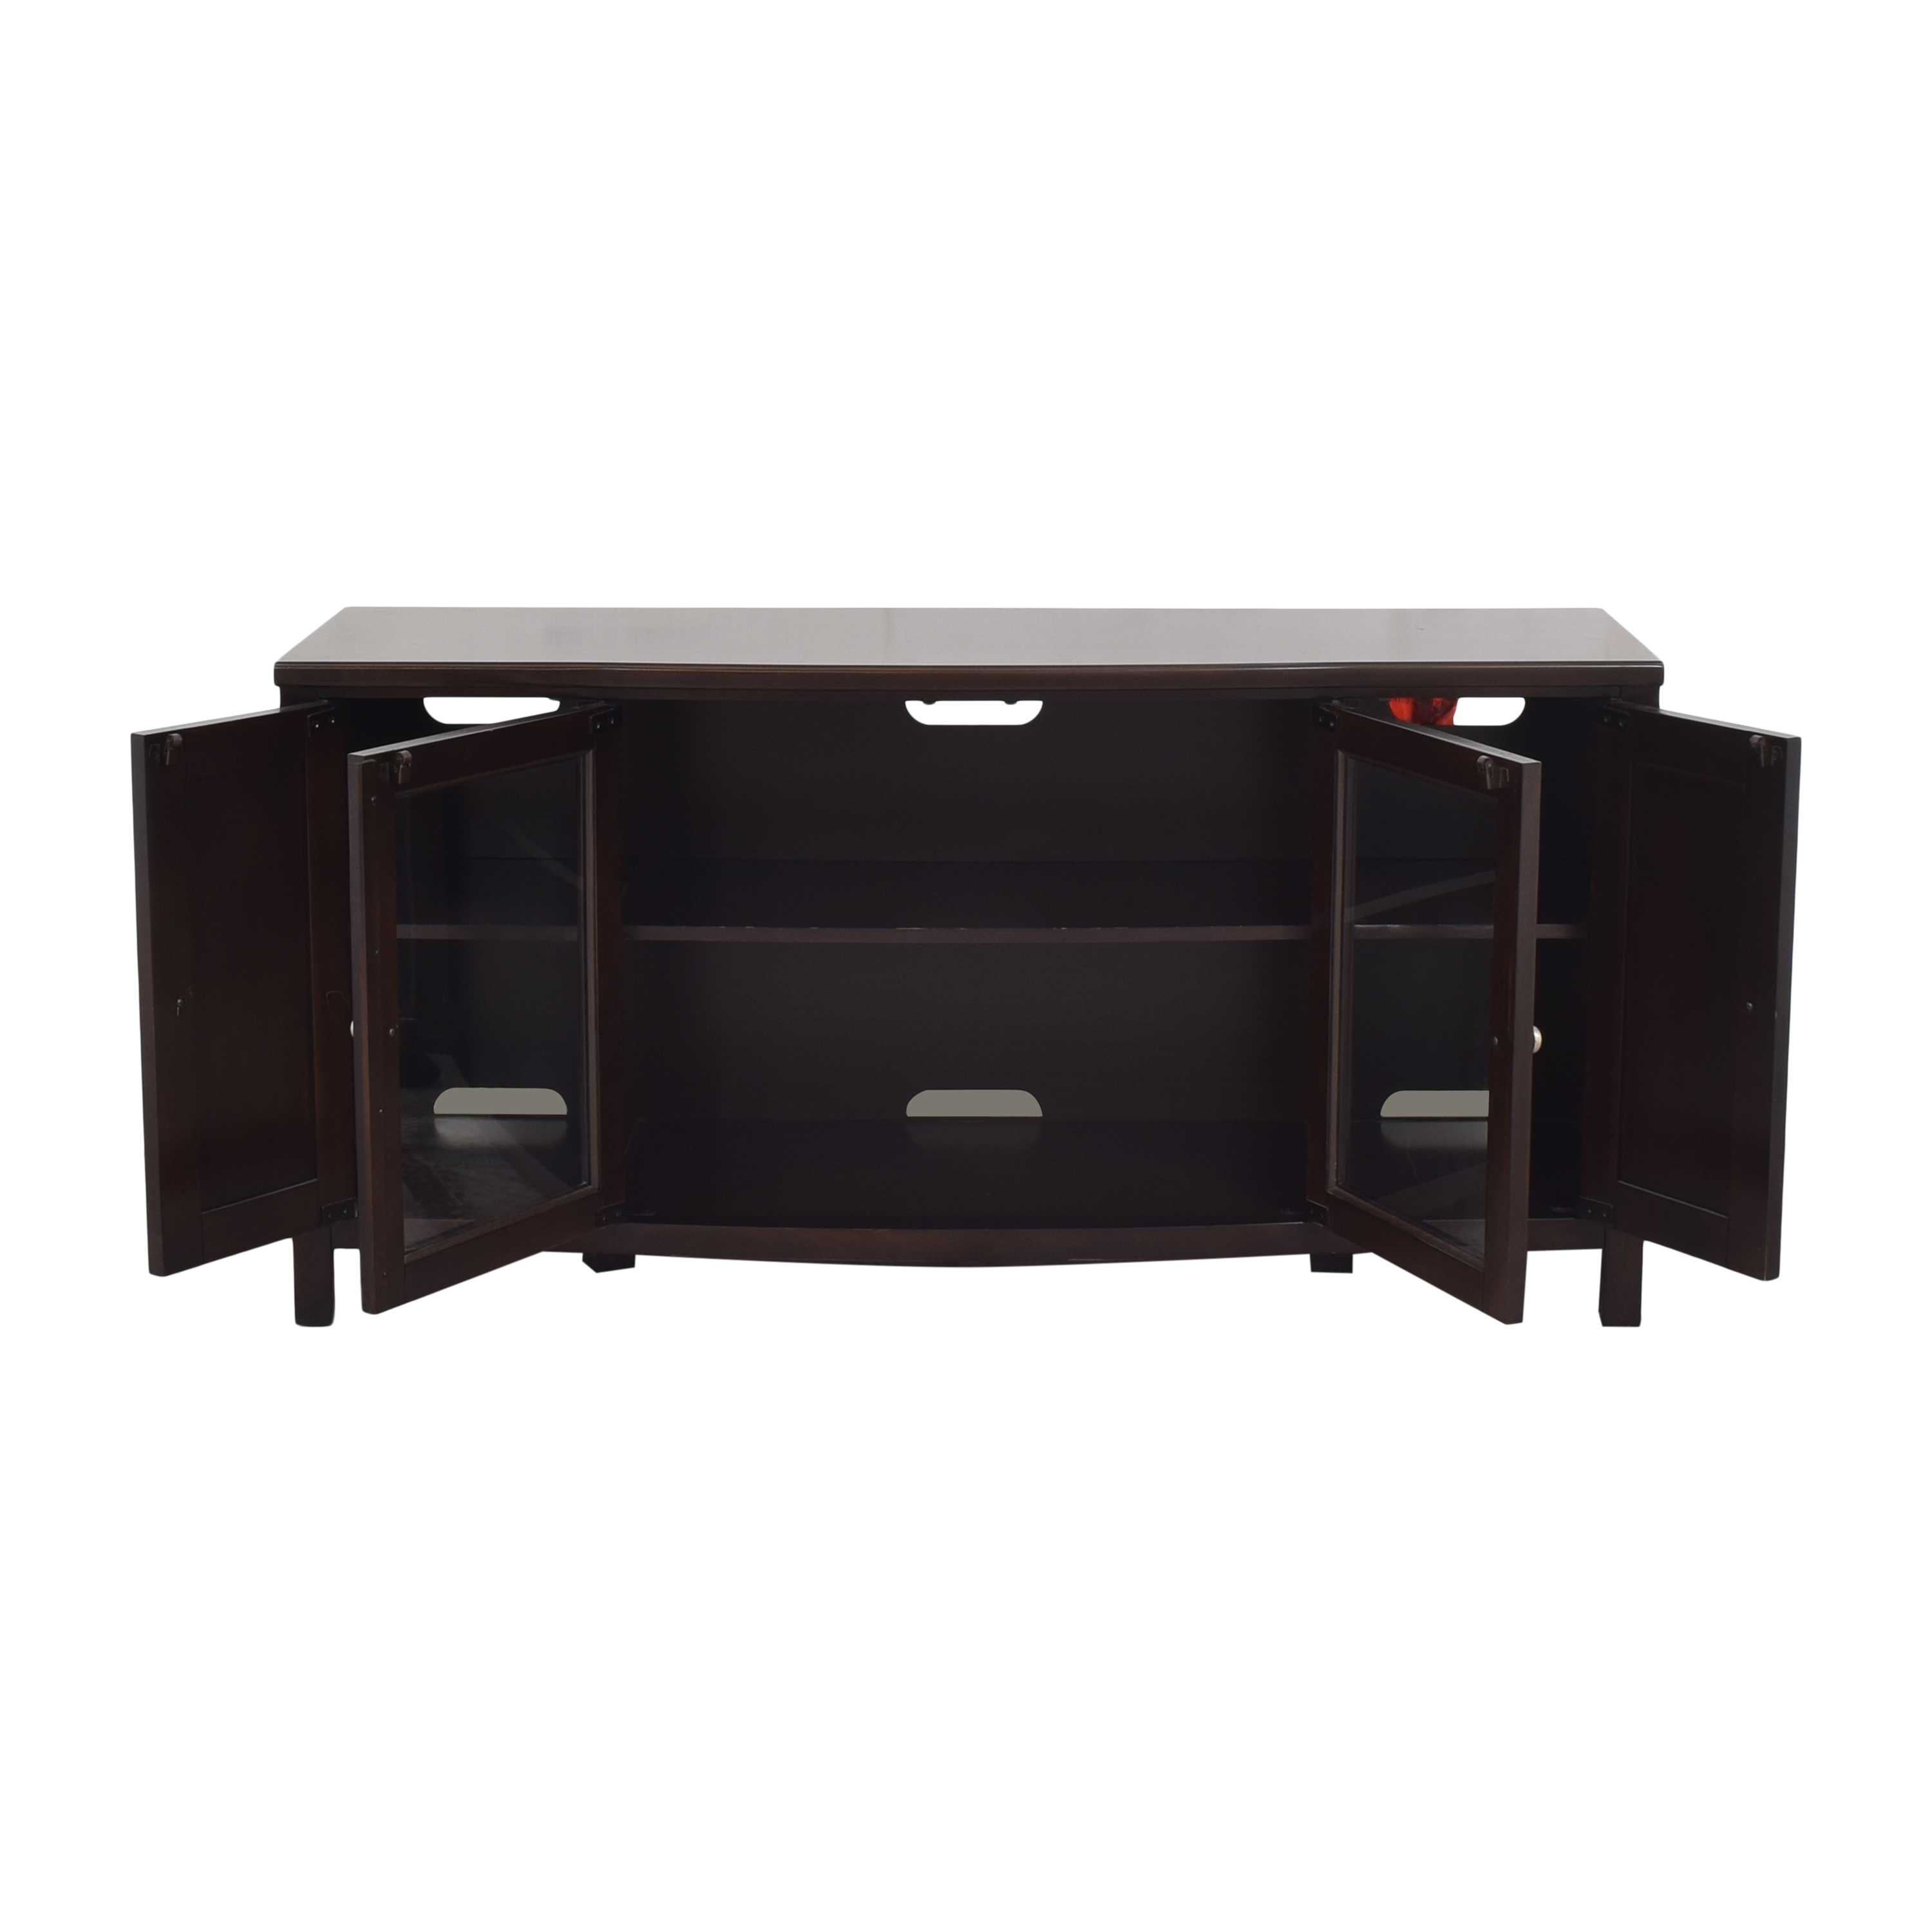 Raymour & Flanigan Raymour & Flanigan West End TV Console used